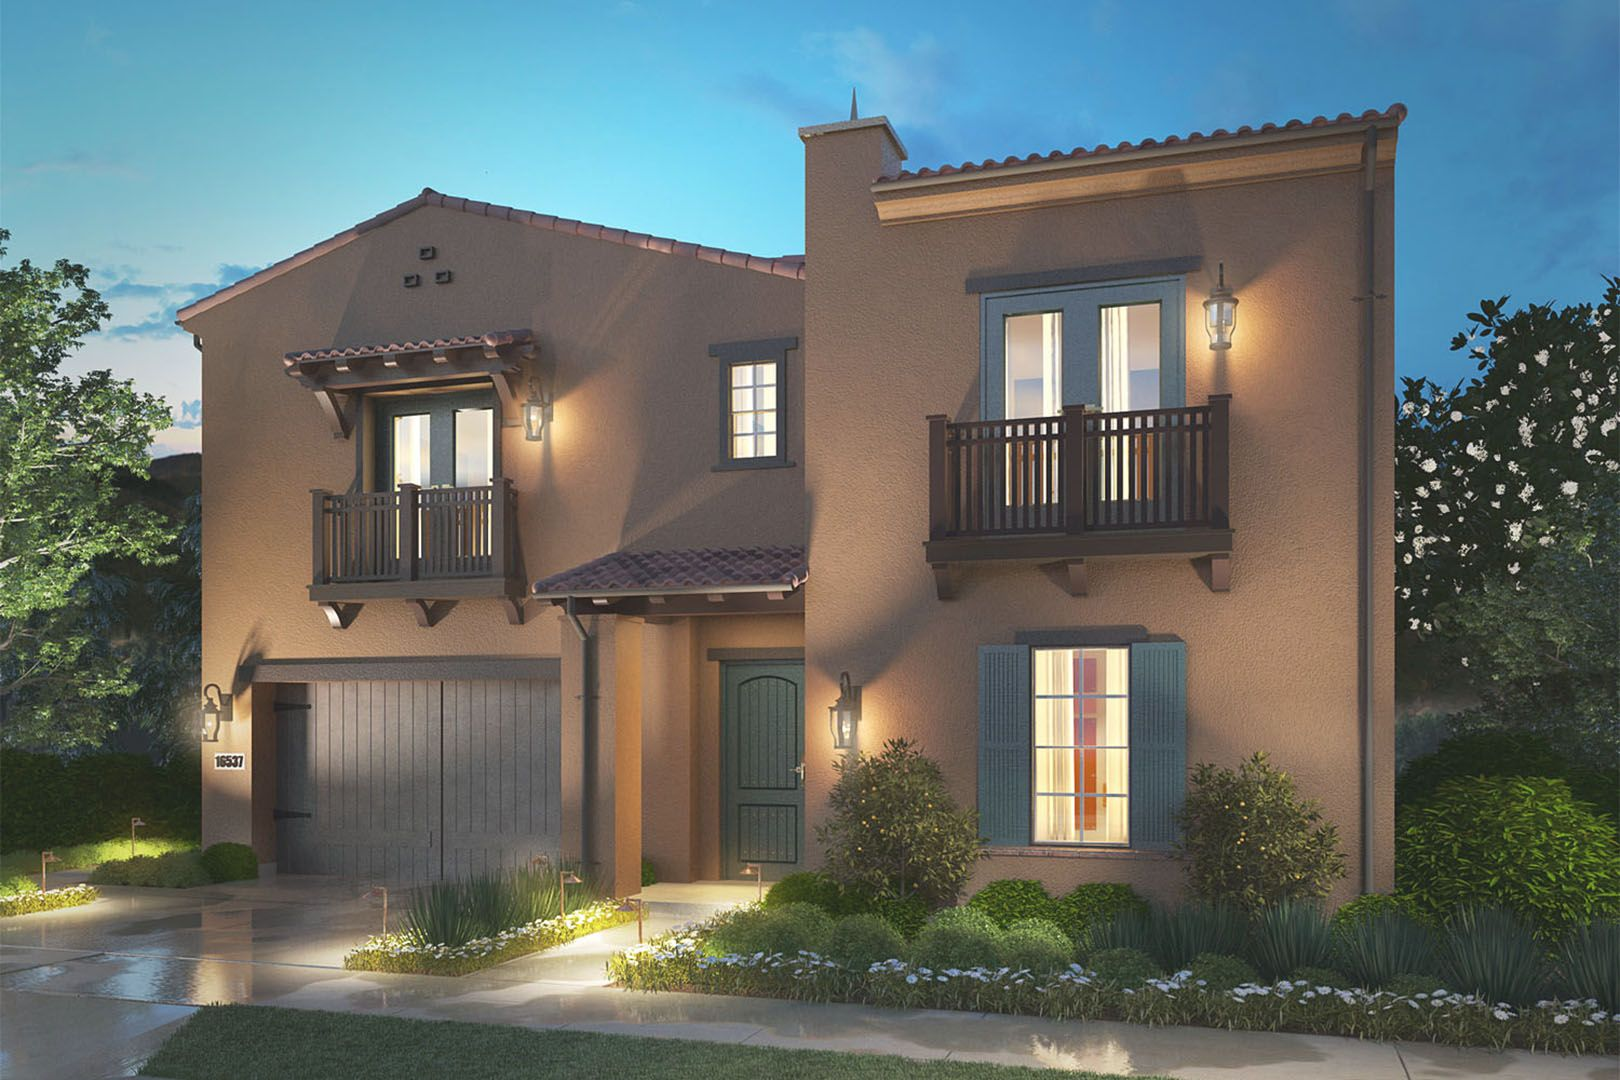 Single Family for Sale at Aubergine At Esencia - Residence 1x 4 Cadencia Street Ladera Ranch, California 92694 United States